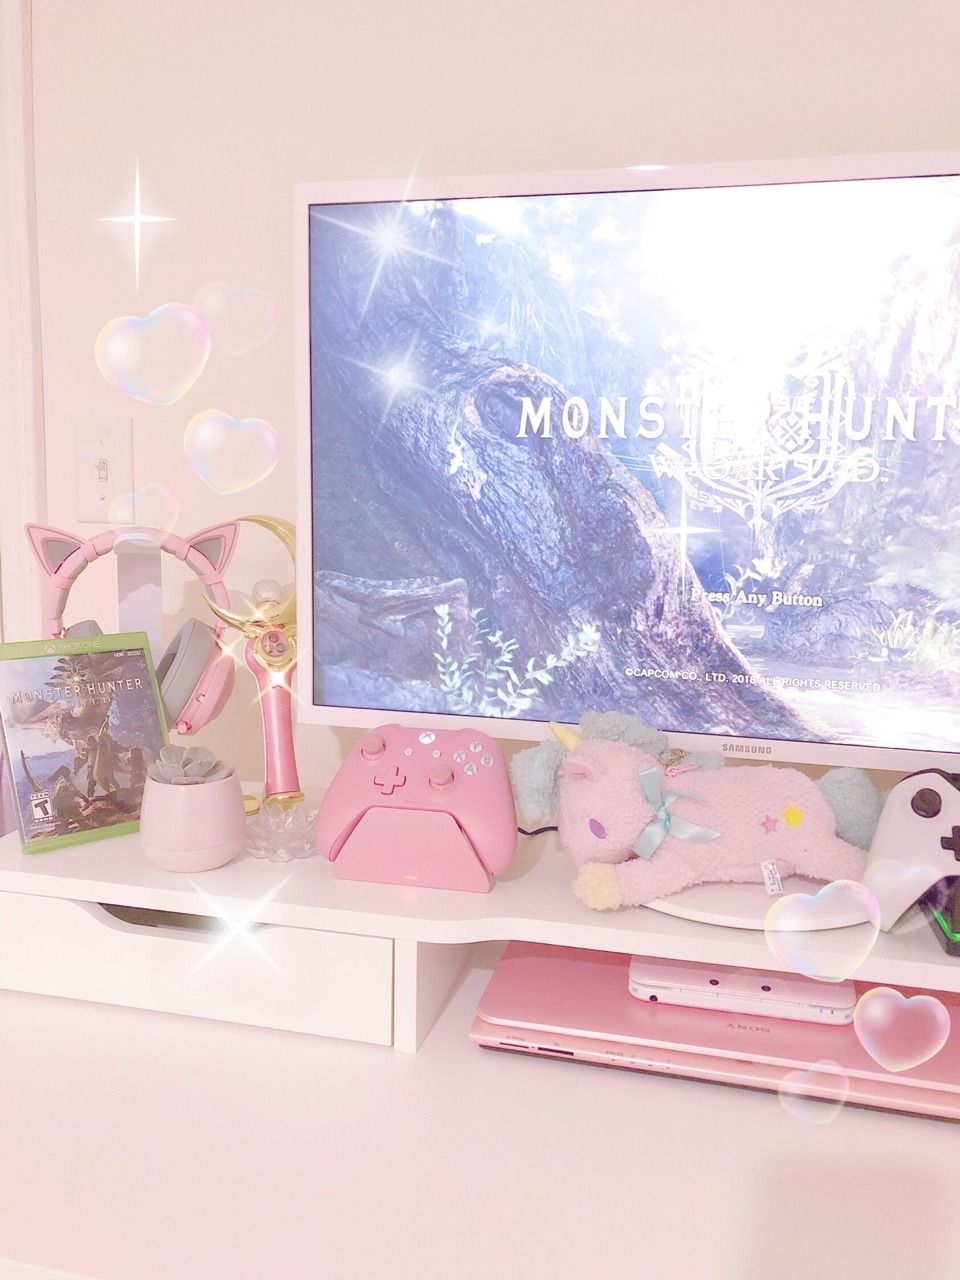 The Cutest Subscription Box Otaku room